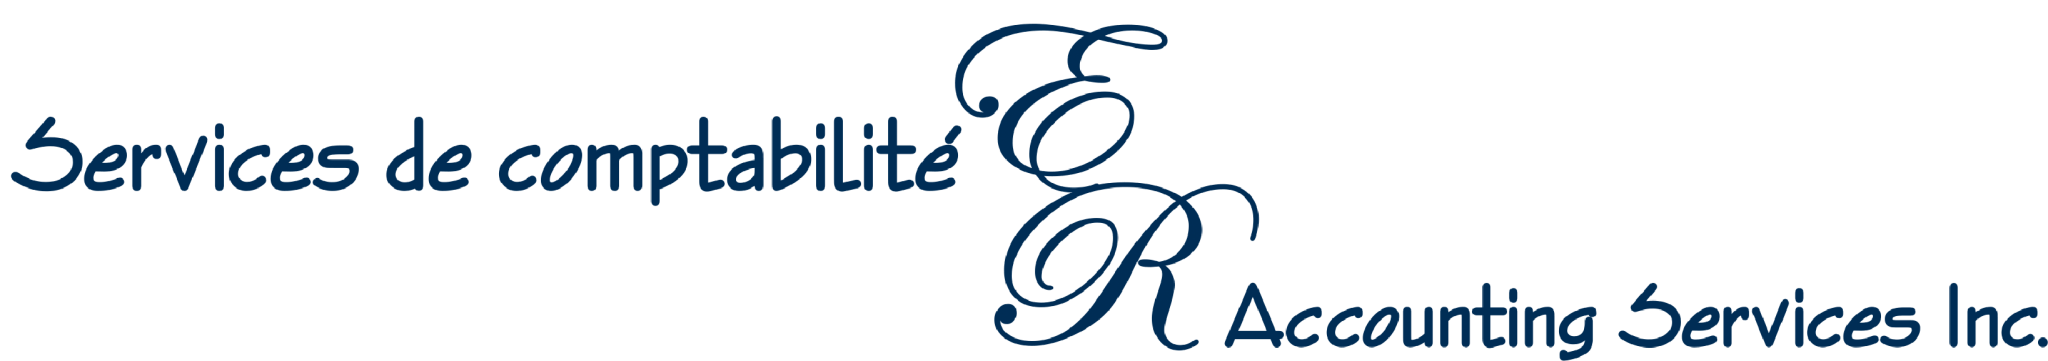 Services de comptabilite ER inc(Blue)_logo[473]_large